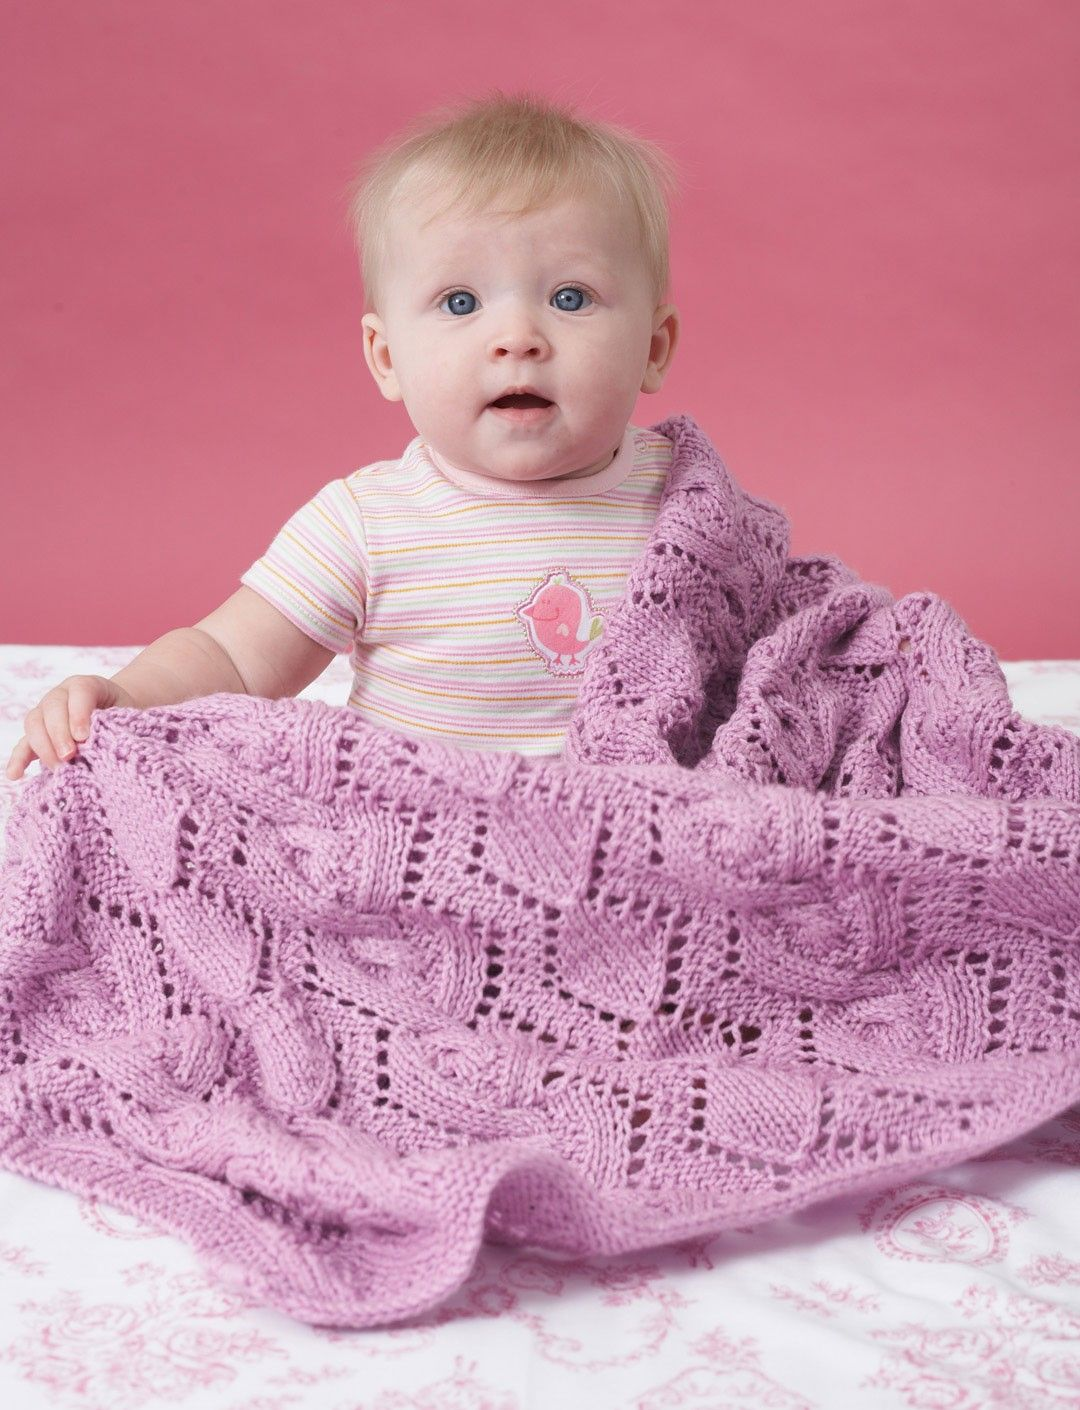 Yarnspirations bernat cable and lace blanket patterns free knitting pattern for cable and lace baby blanket in sport yarn diamond lace pattern with complementary cable bankloansurffo Gallery